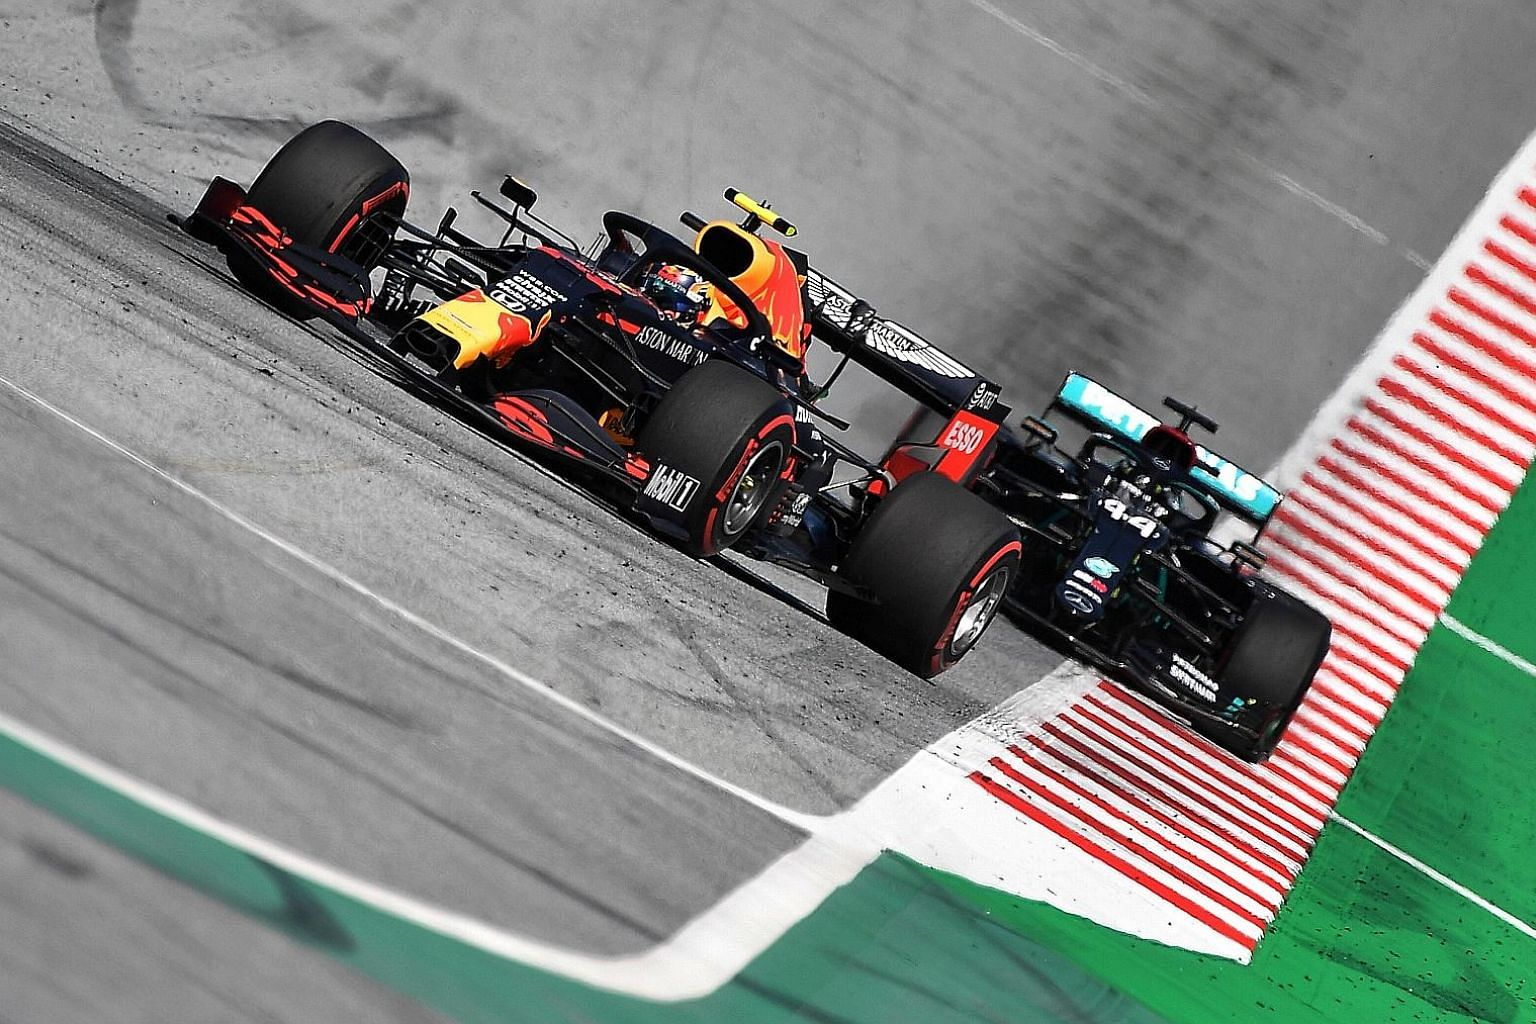 Red Bull driver Alexander Albon leading Mercedes' Lewis Hamilton during the Austrian Grand Prix on Sunday. The two would touch later on with Hamilton incurring a time penalty and Albon's race ending with engine trouble. PHOTO: REUTERS